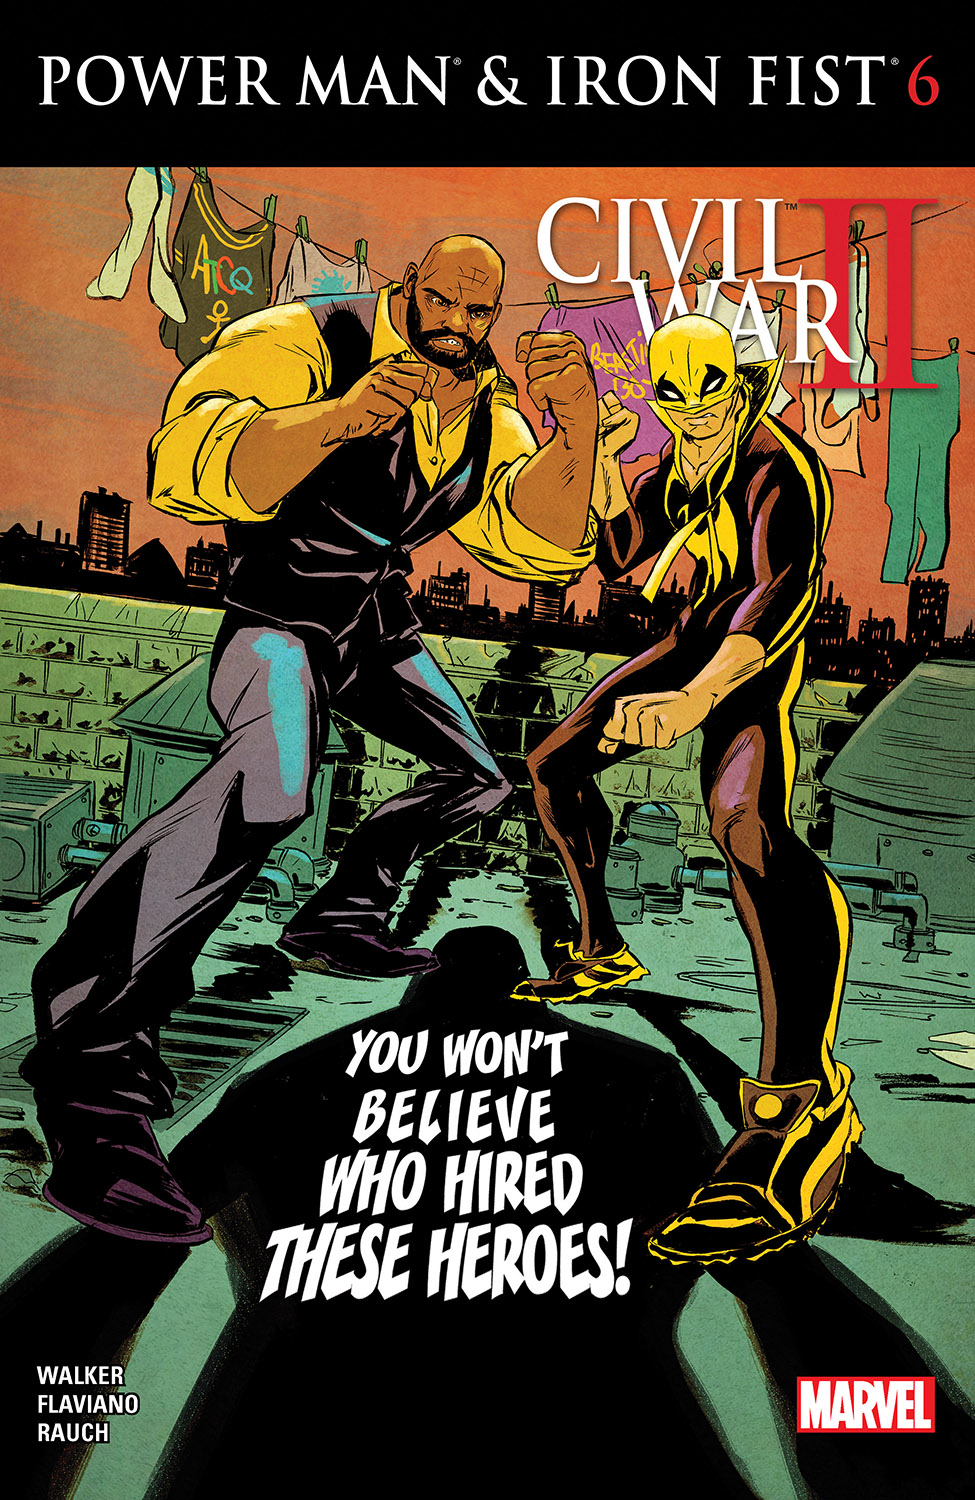 Power Man and Iron Fist (2016) #6